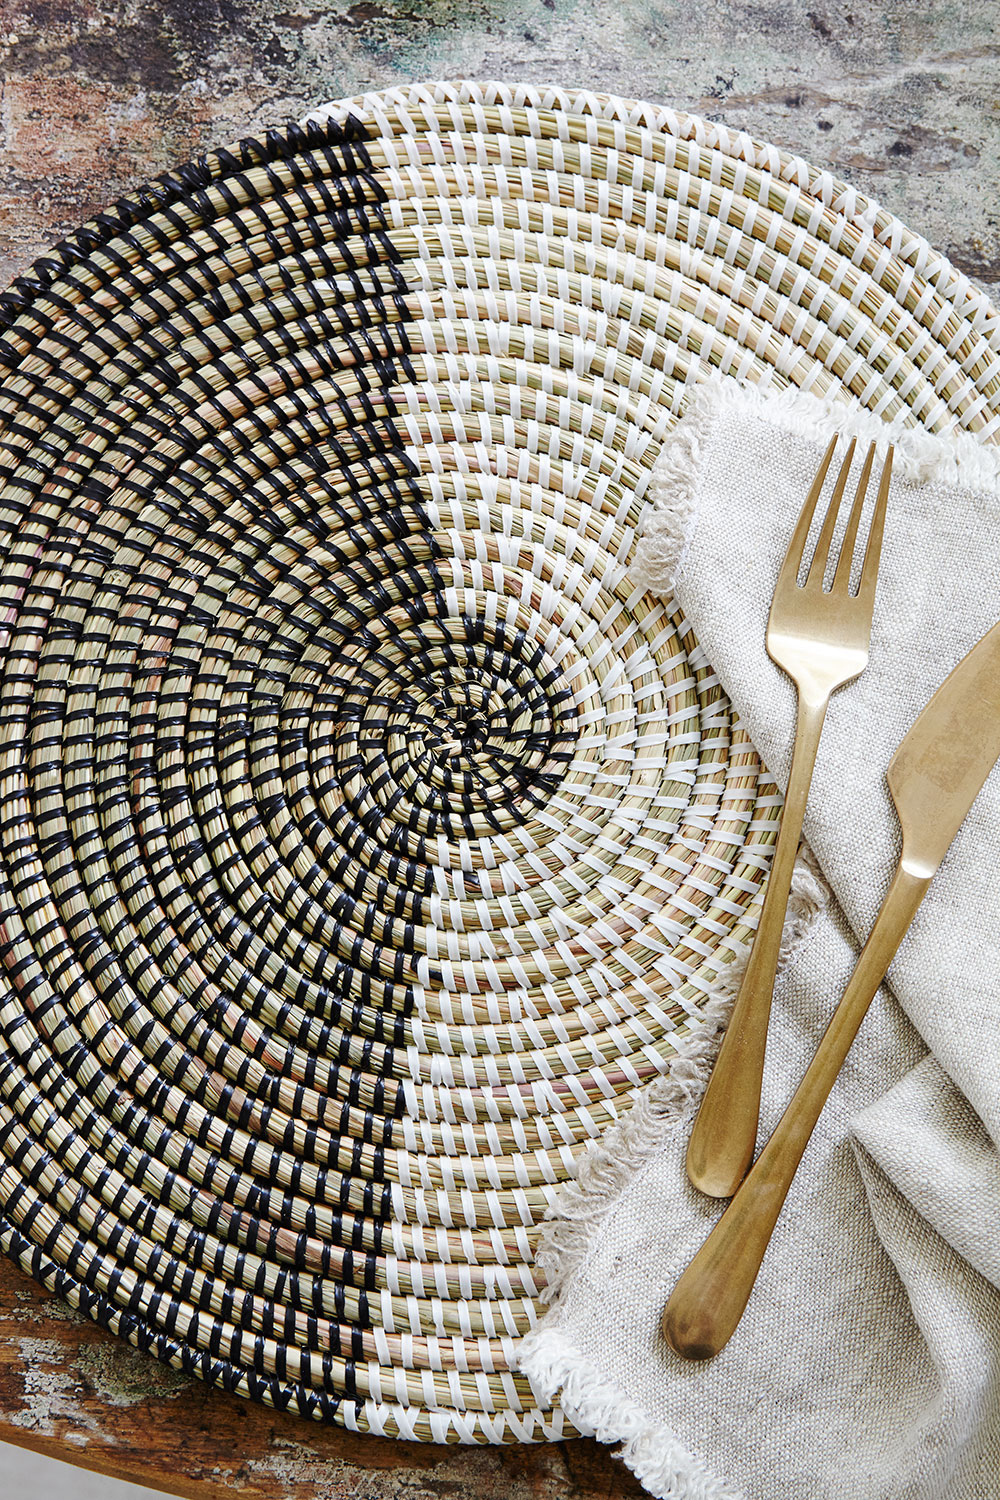 HG_Basketry_placemat_097.jpg